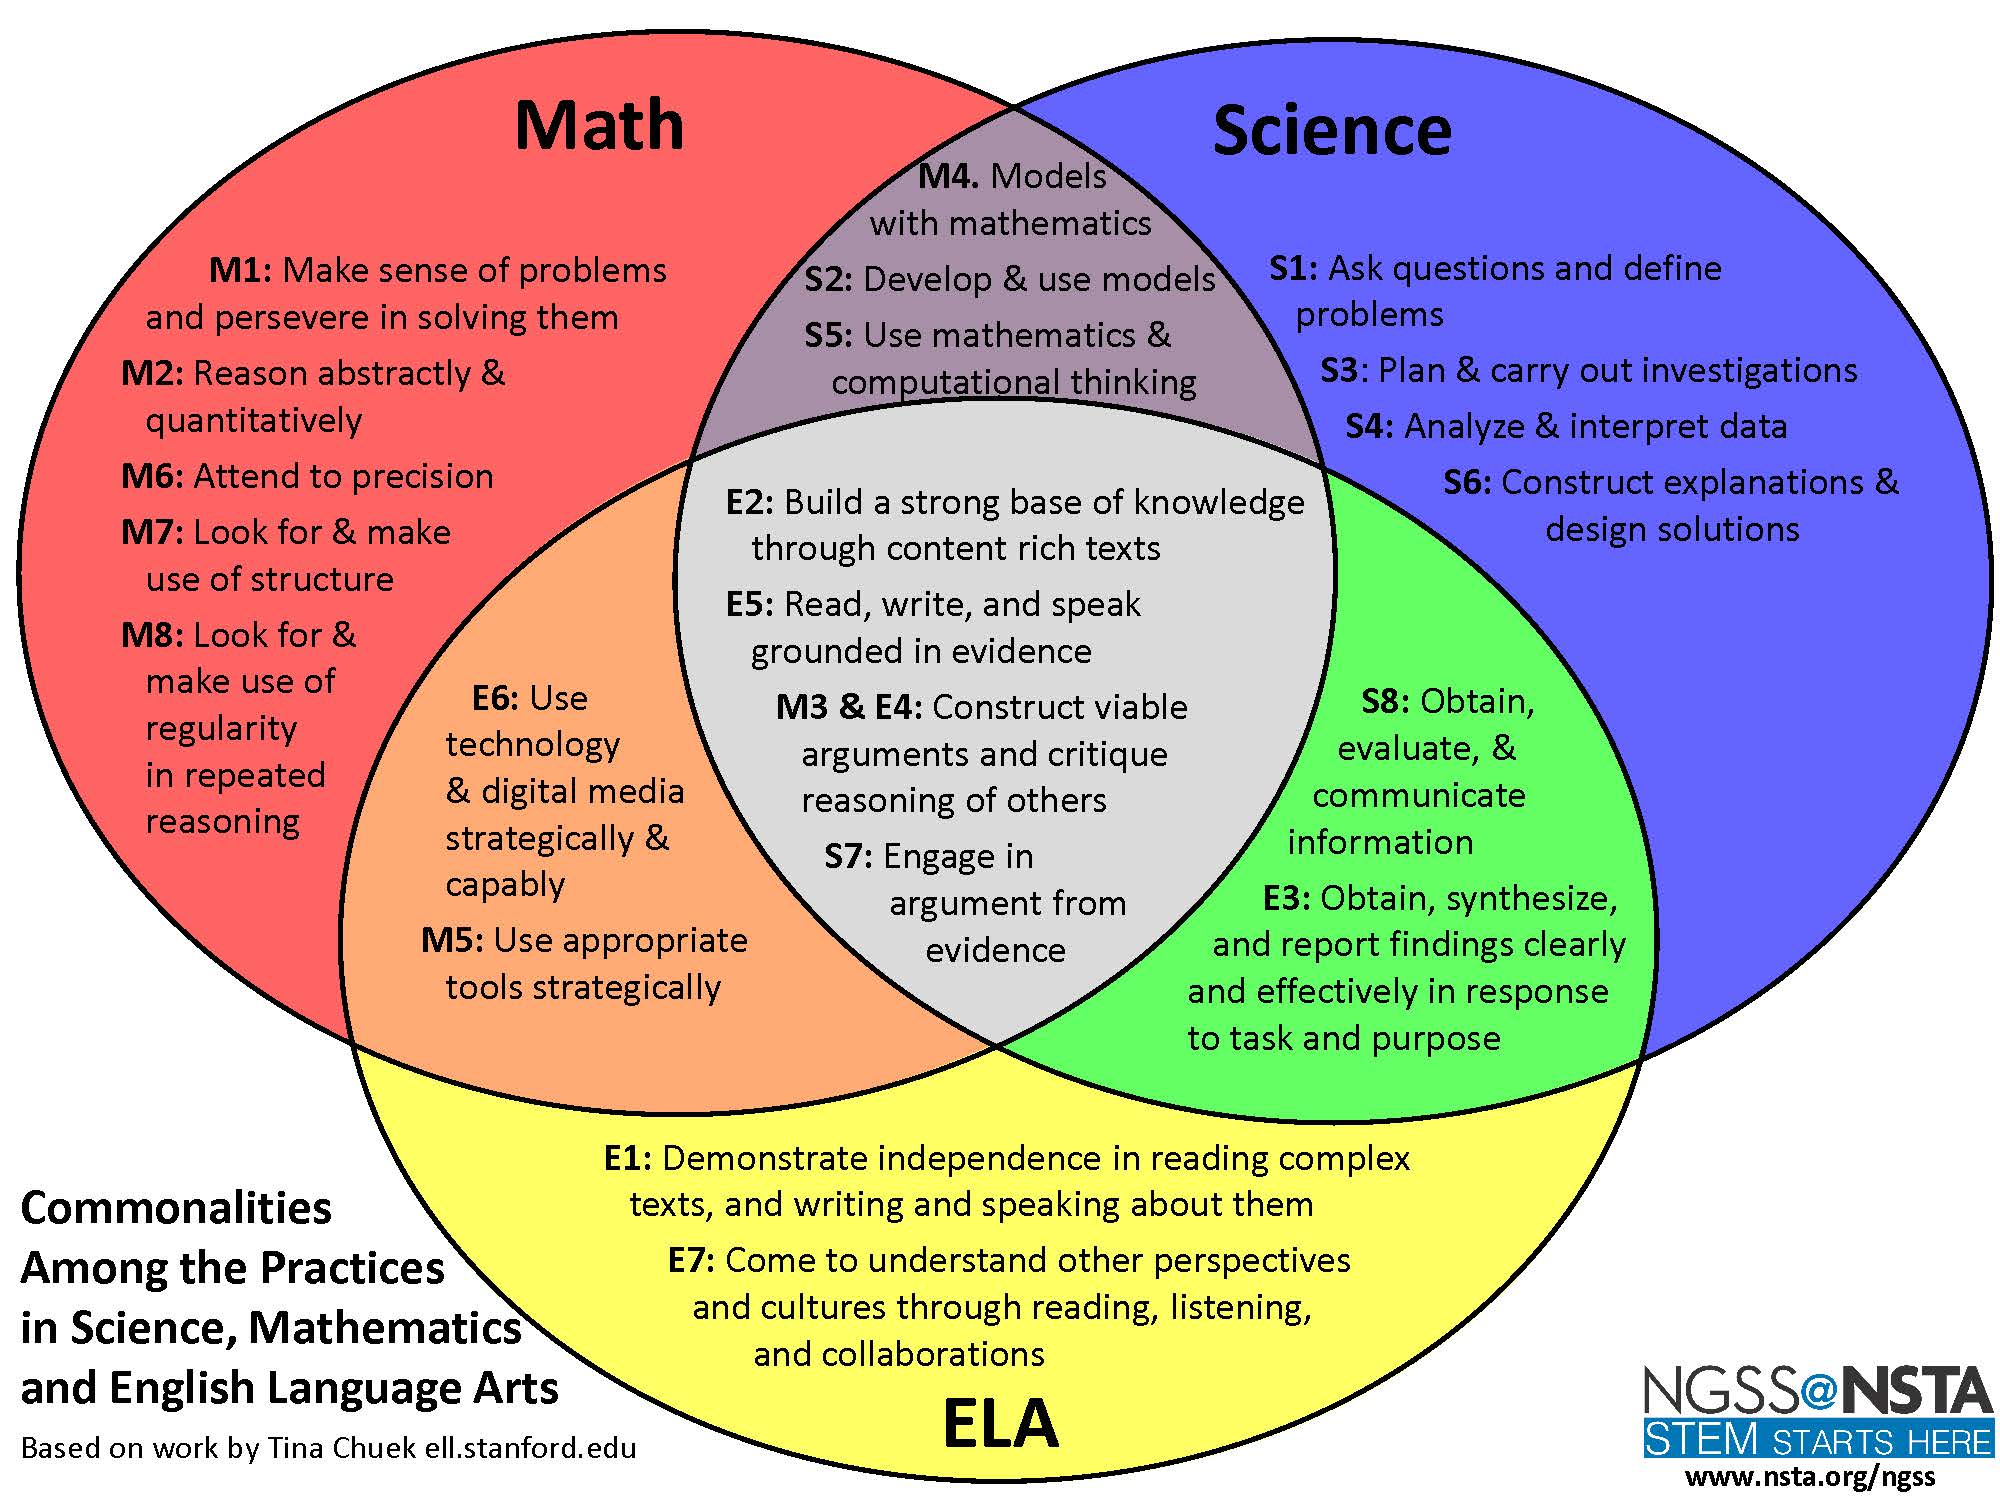 Cte online resources ngss venn diagram ngss venn diagram ccuart Gallery